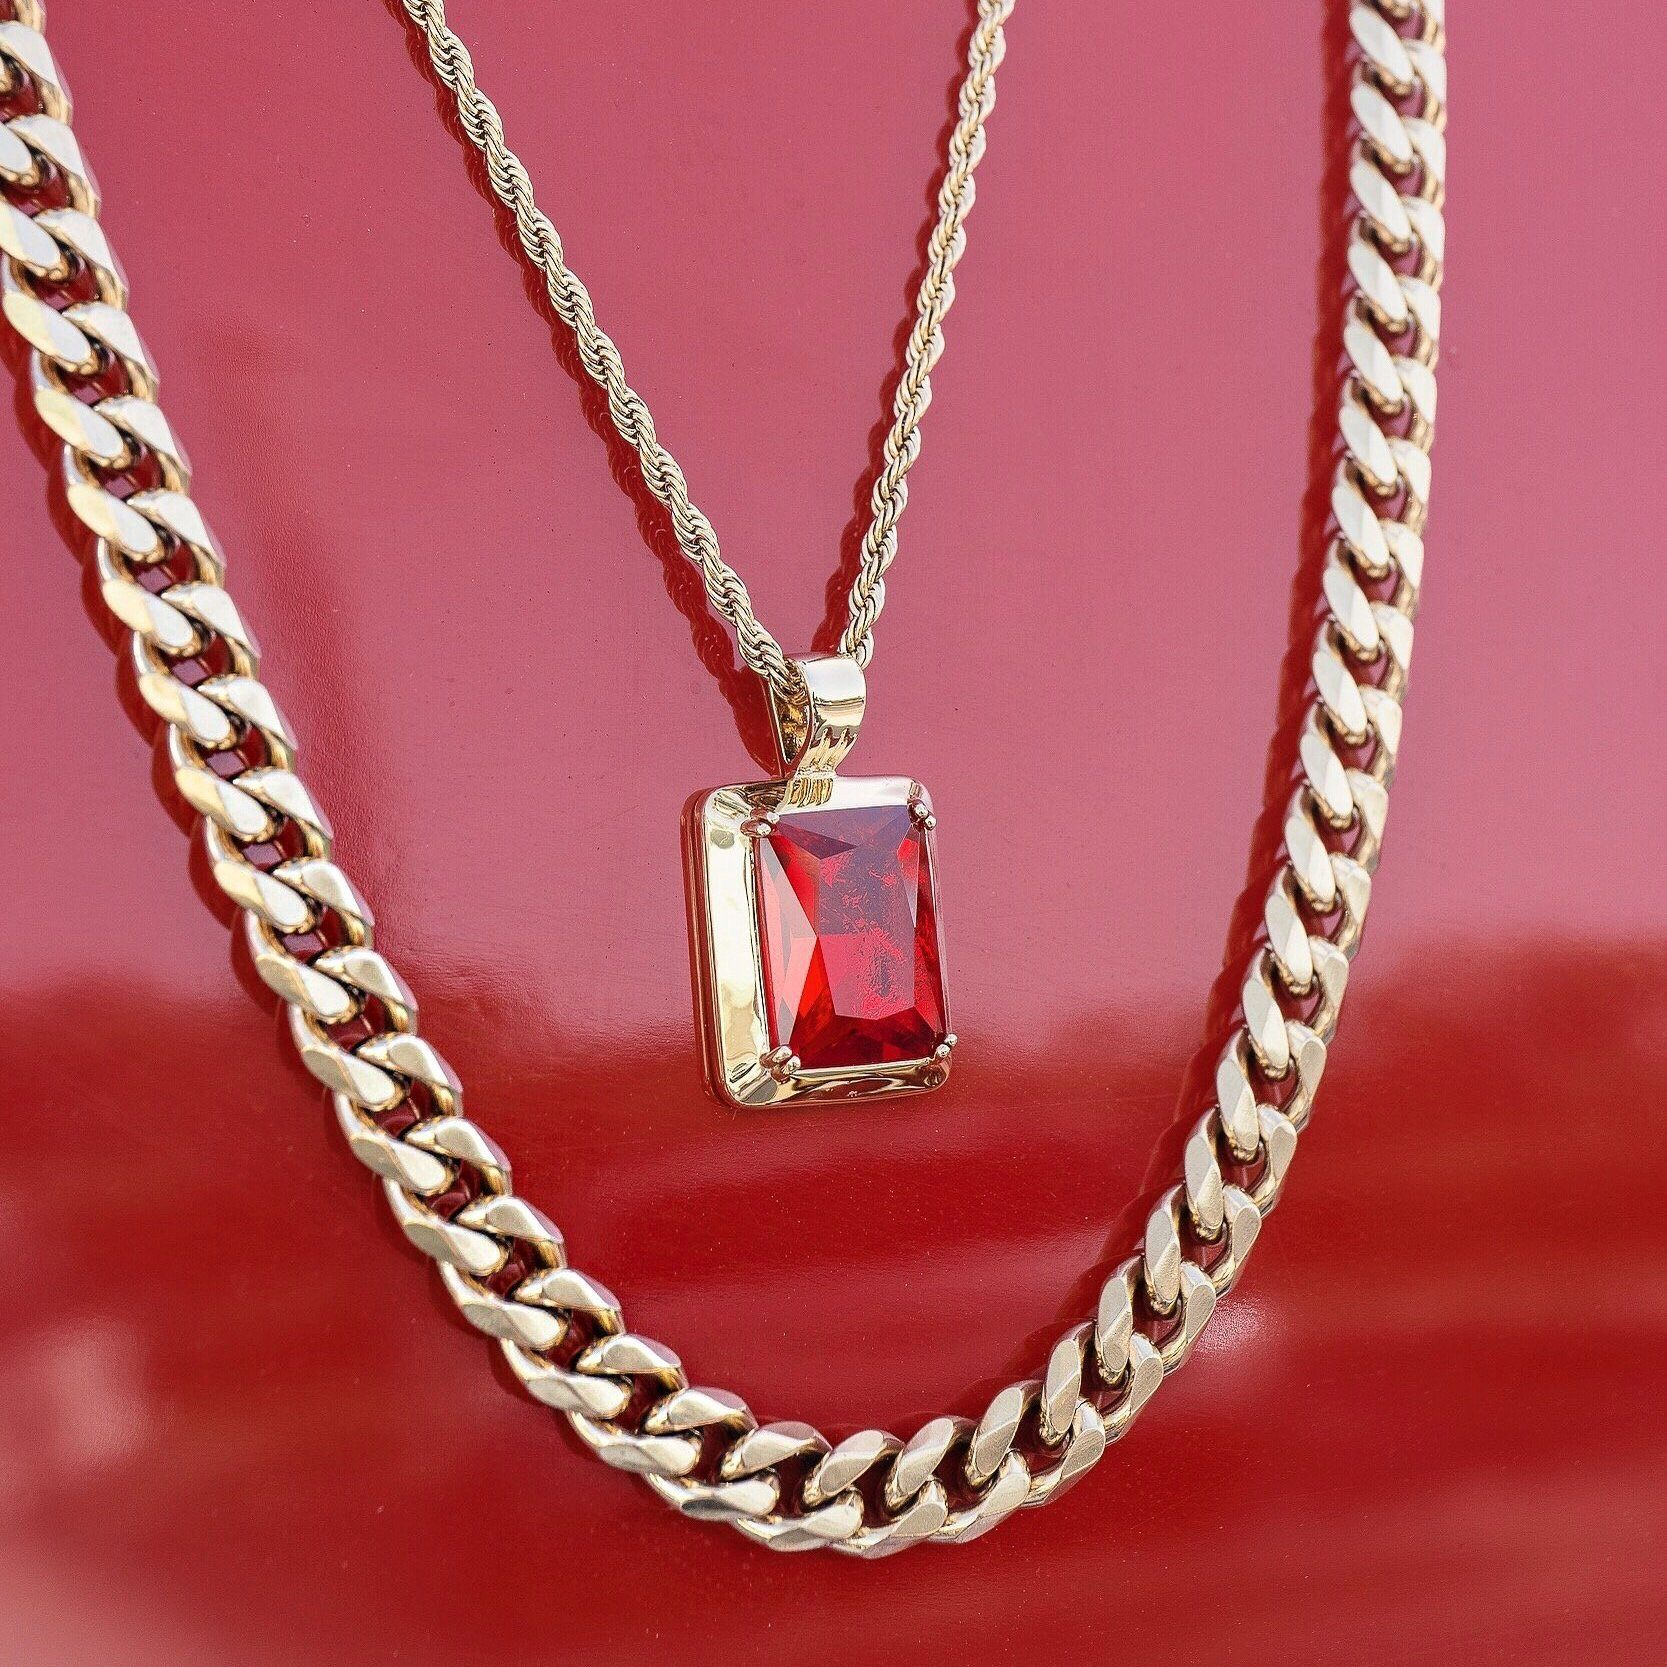 scale the upscale high jewellery necklace ruby false editor crop subsampling rose shop stenzhorn red product